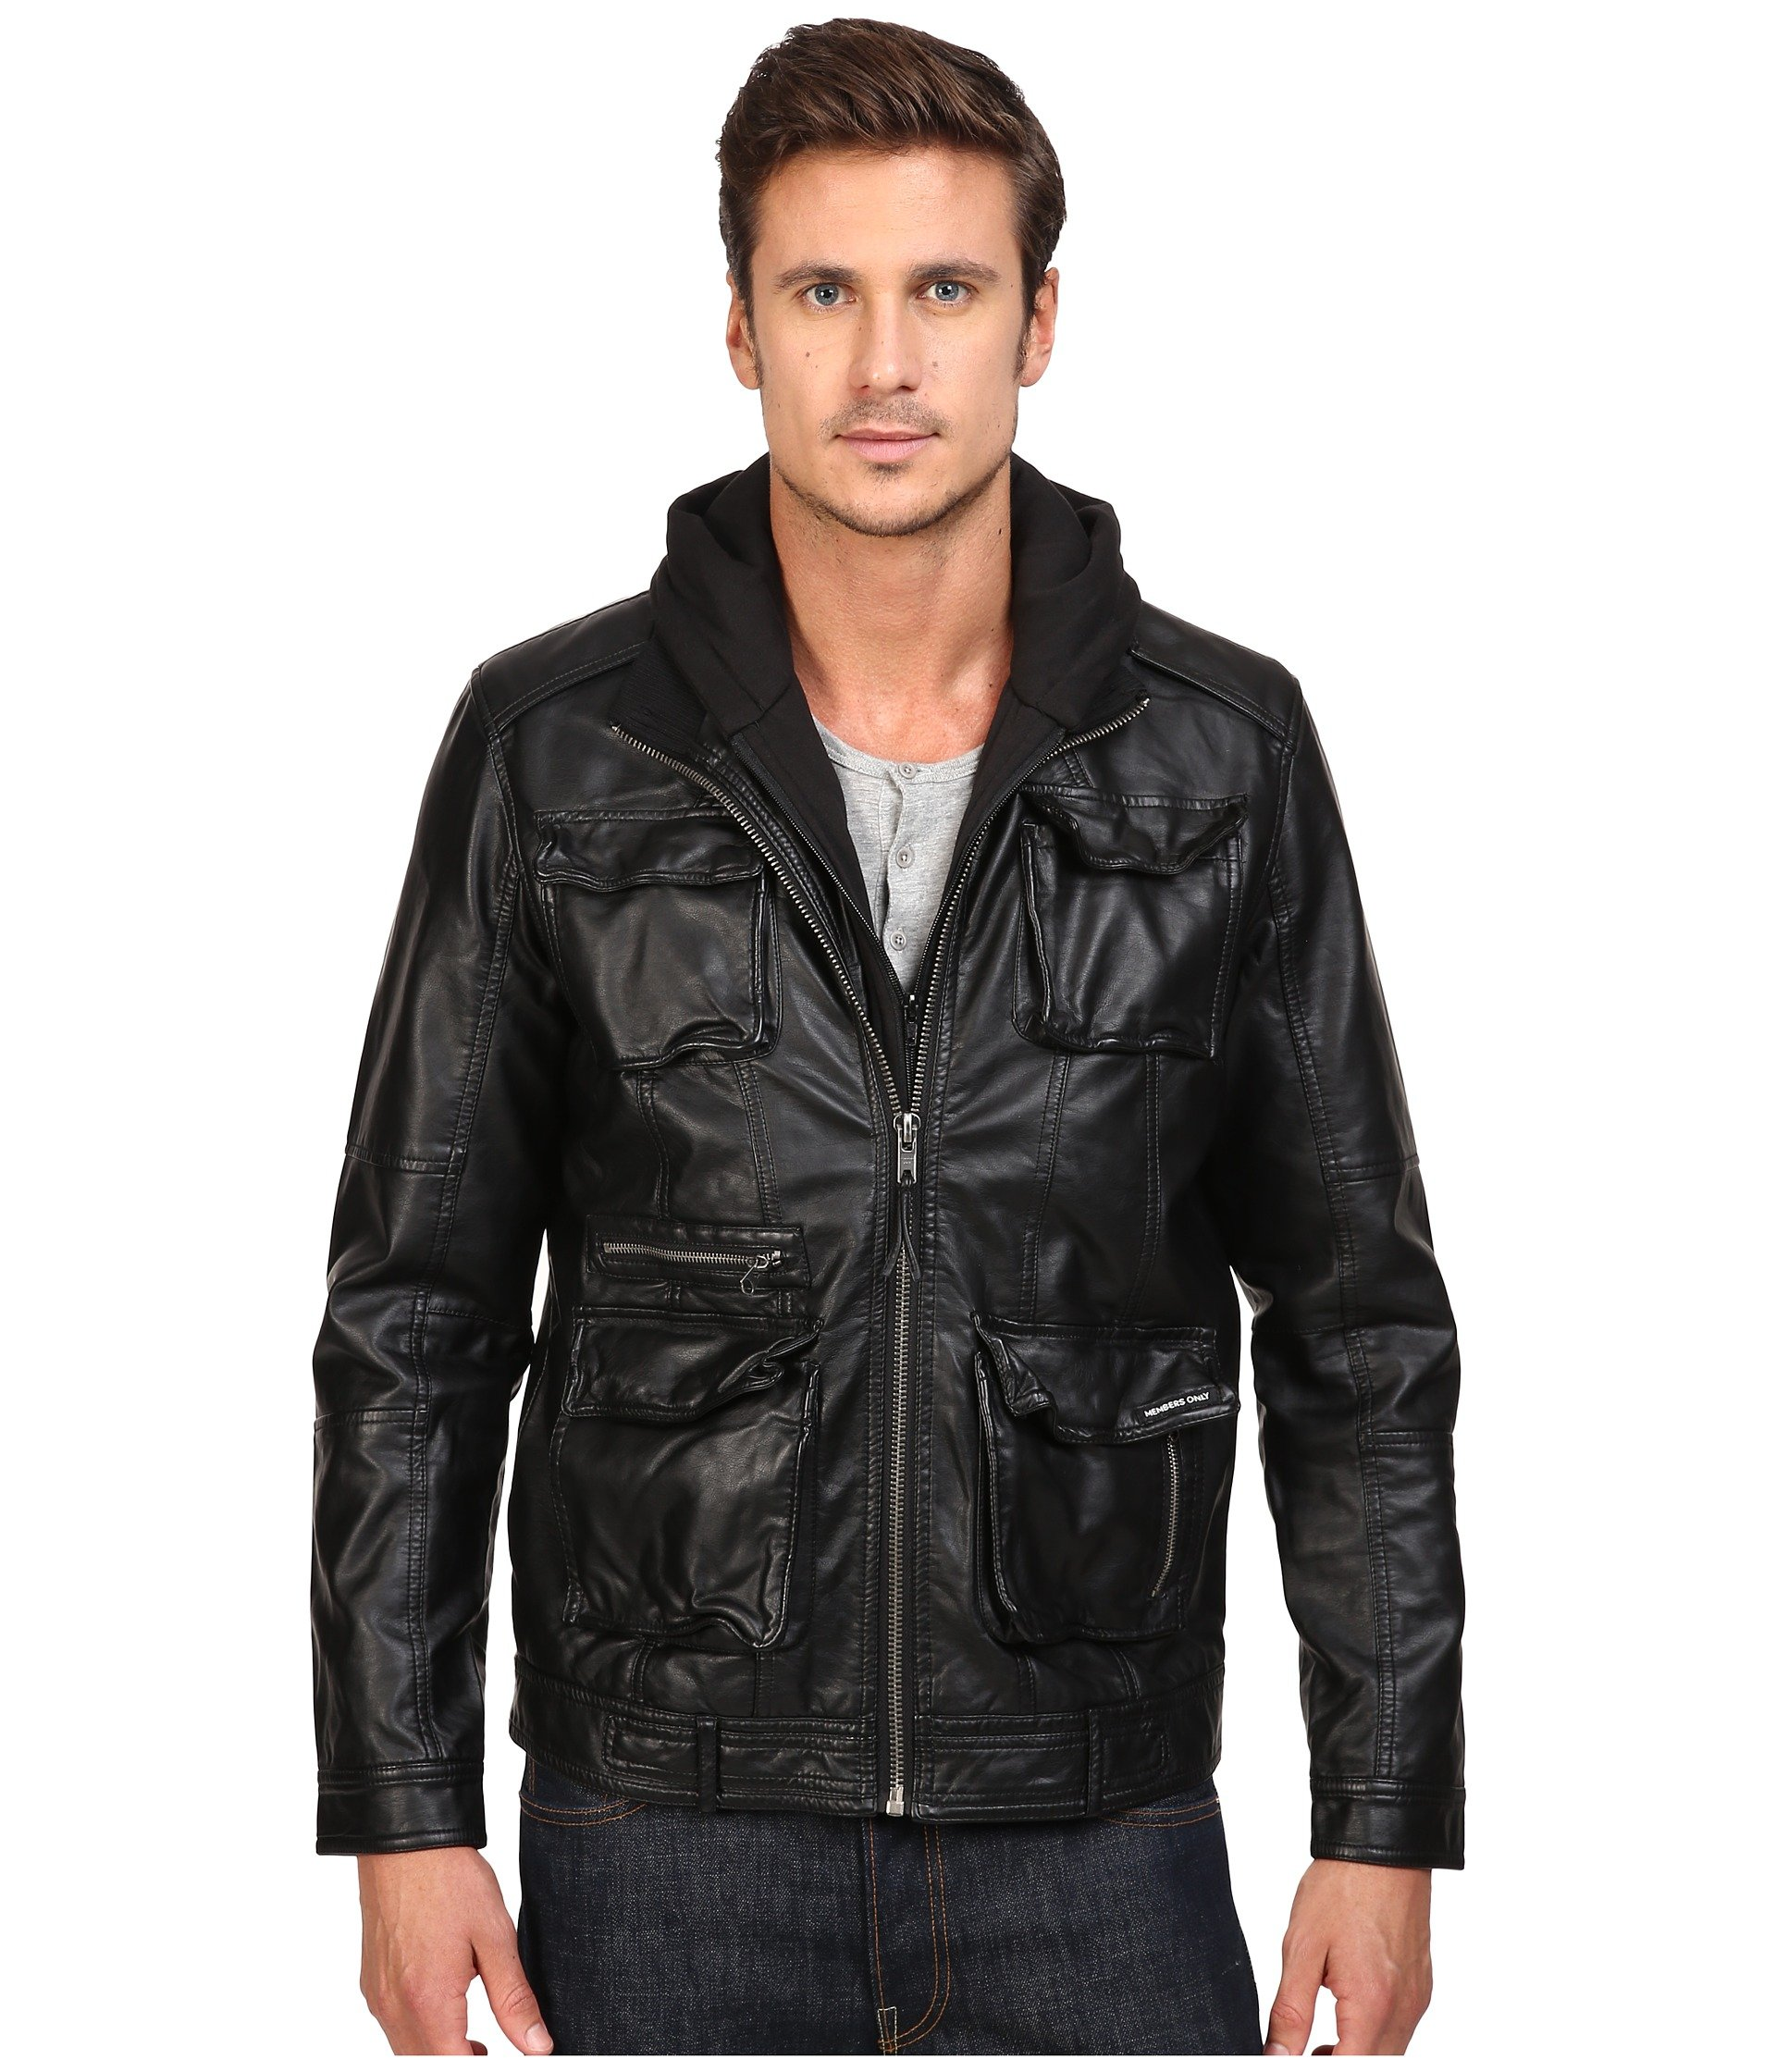 MEMBERS ONLY L-Train Washed Pu Jacket, Black